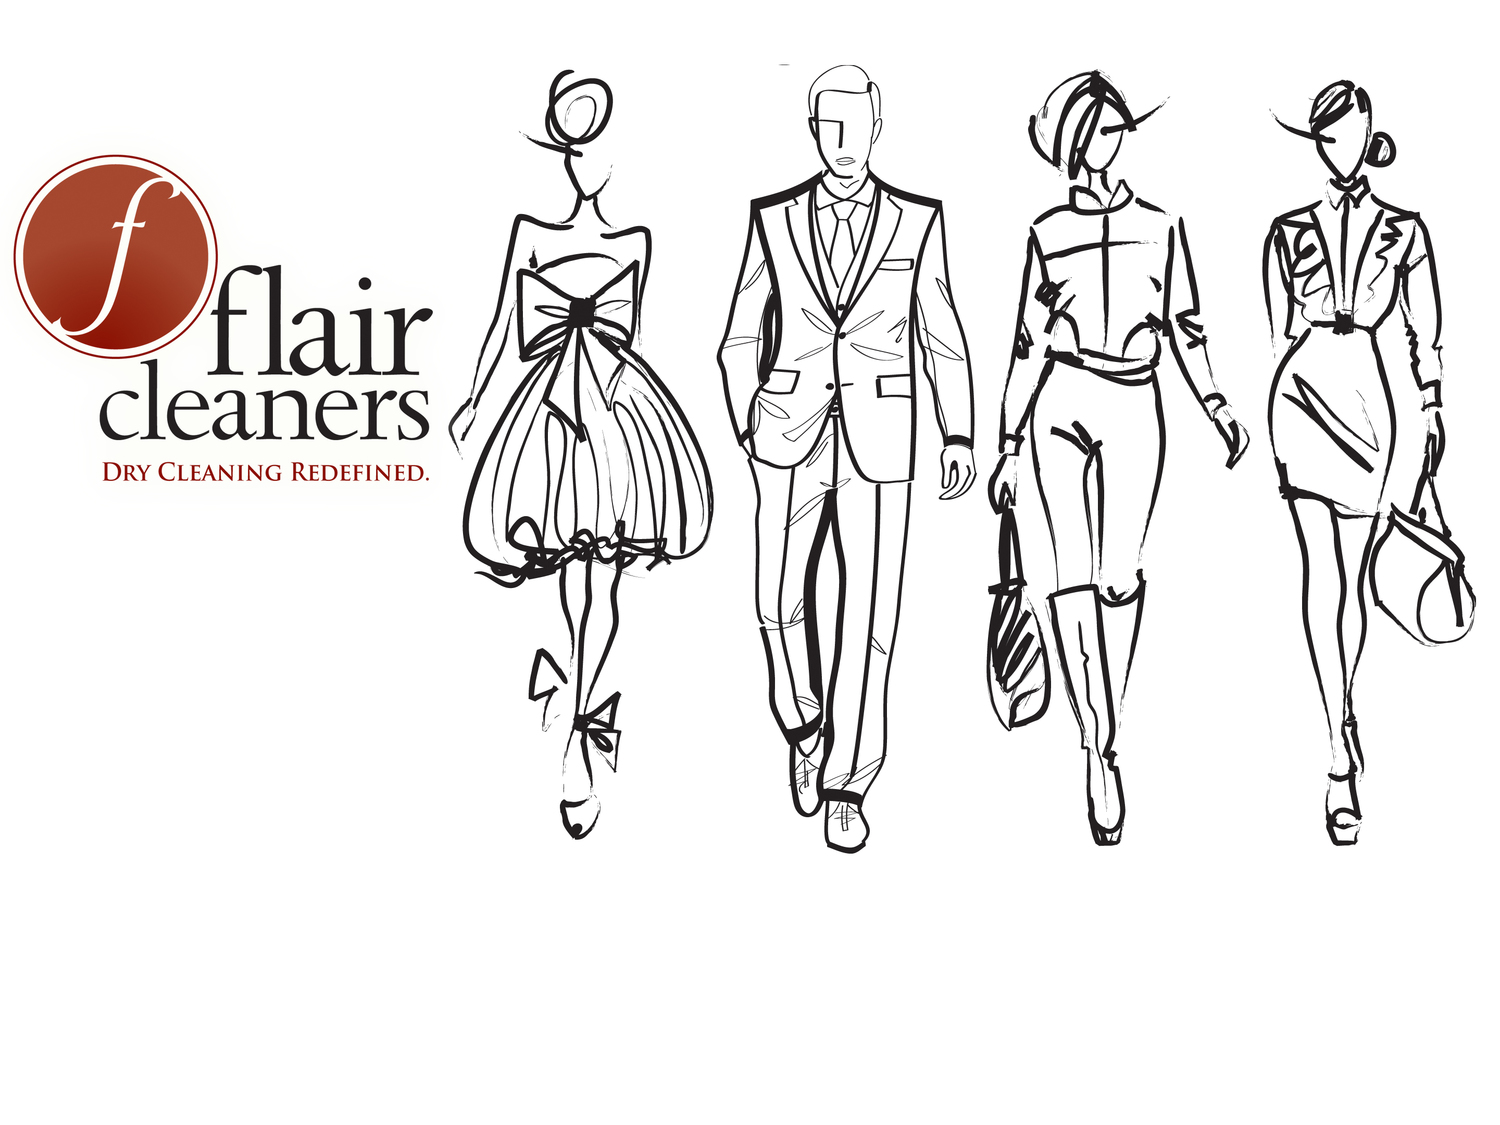 Flair Cleaners